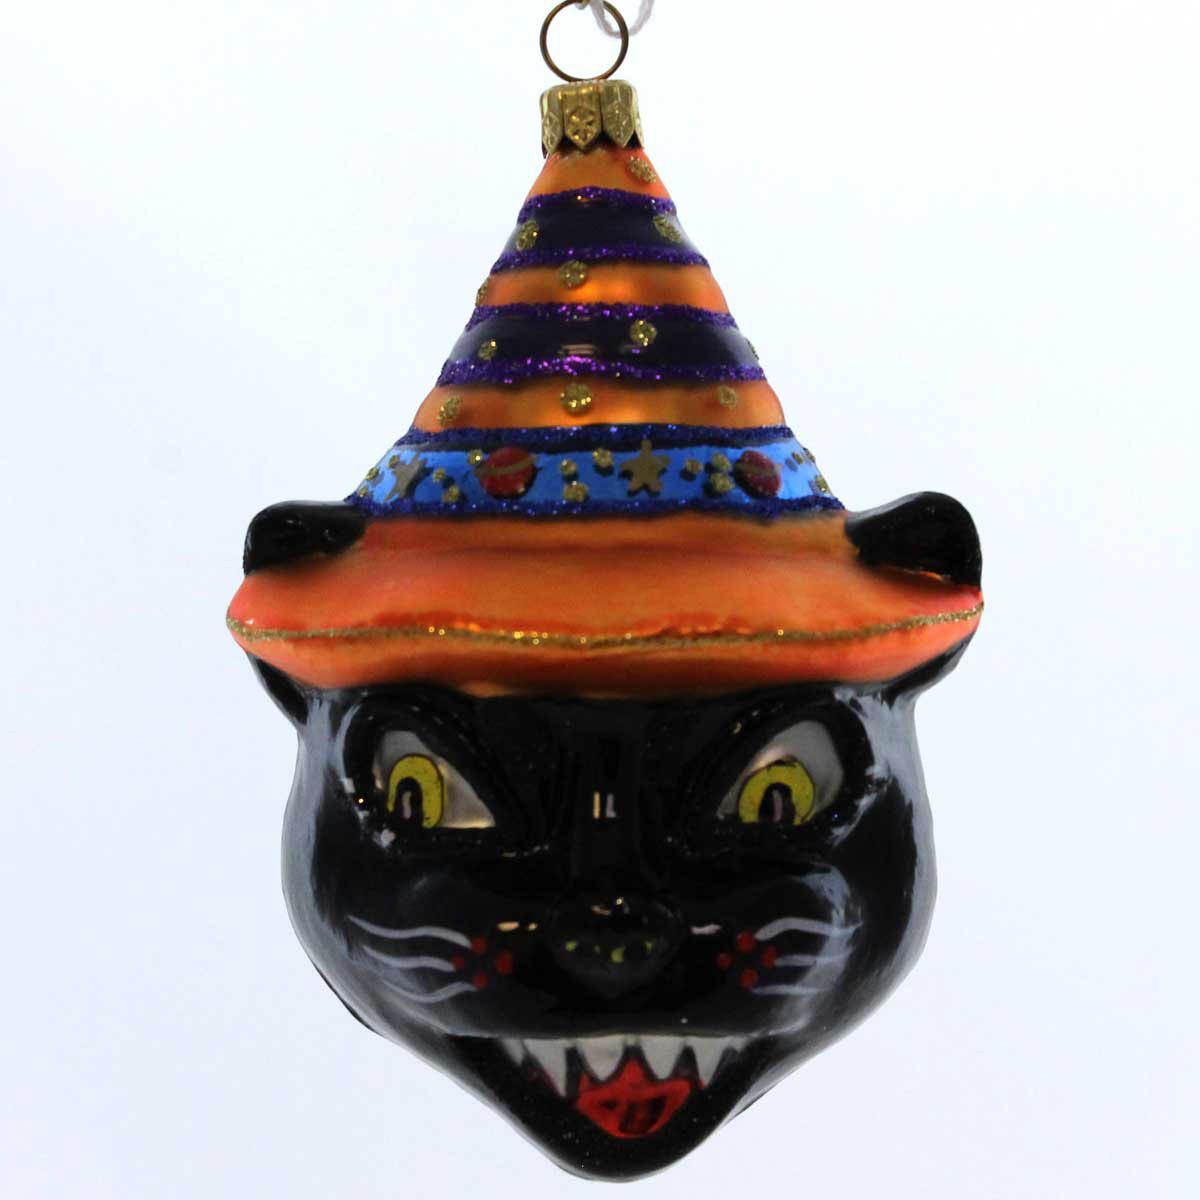 Halloween glass ornaments - Holiday Ornament Scary Black Cat Halloween Glass Ornament